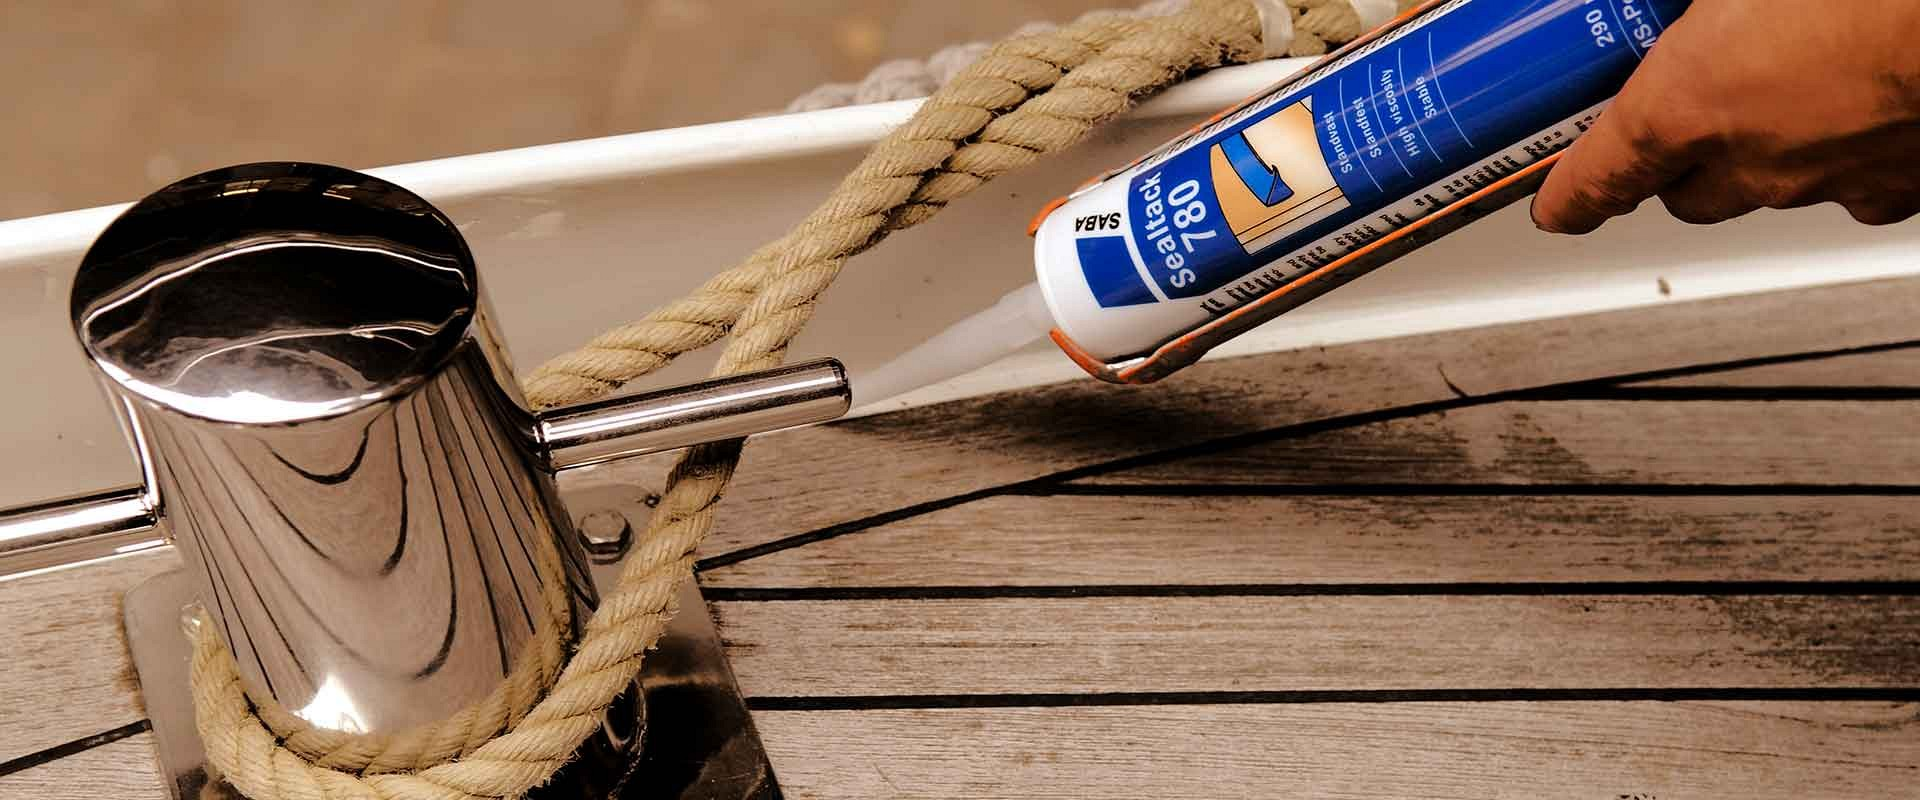 Saba Marine Grade Adhesive and Sealants Banner